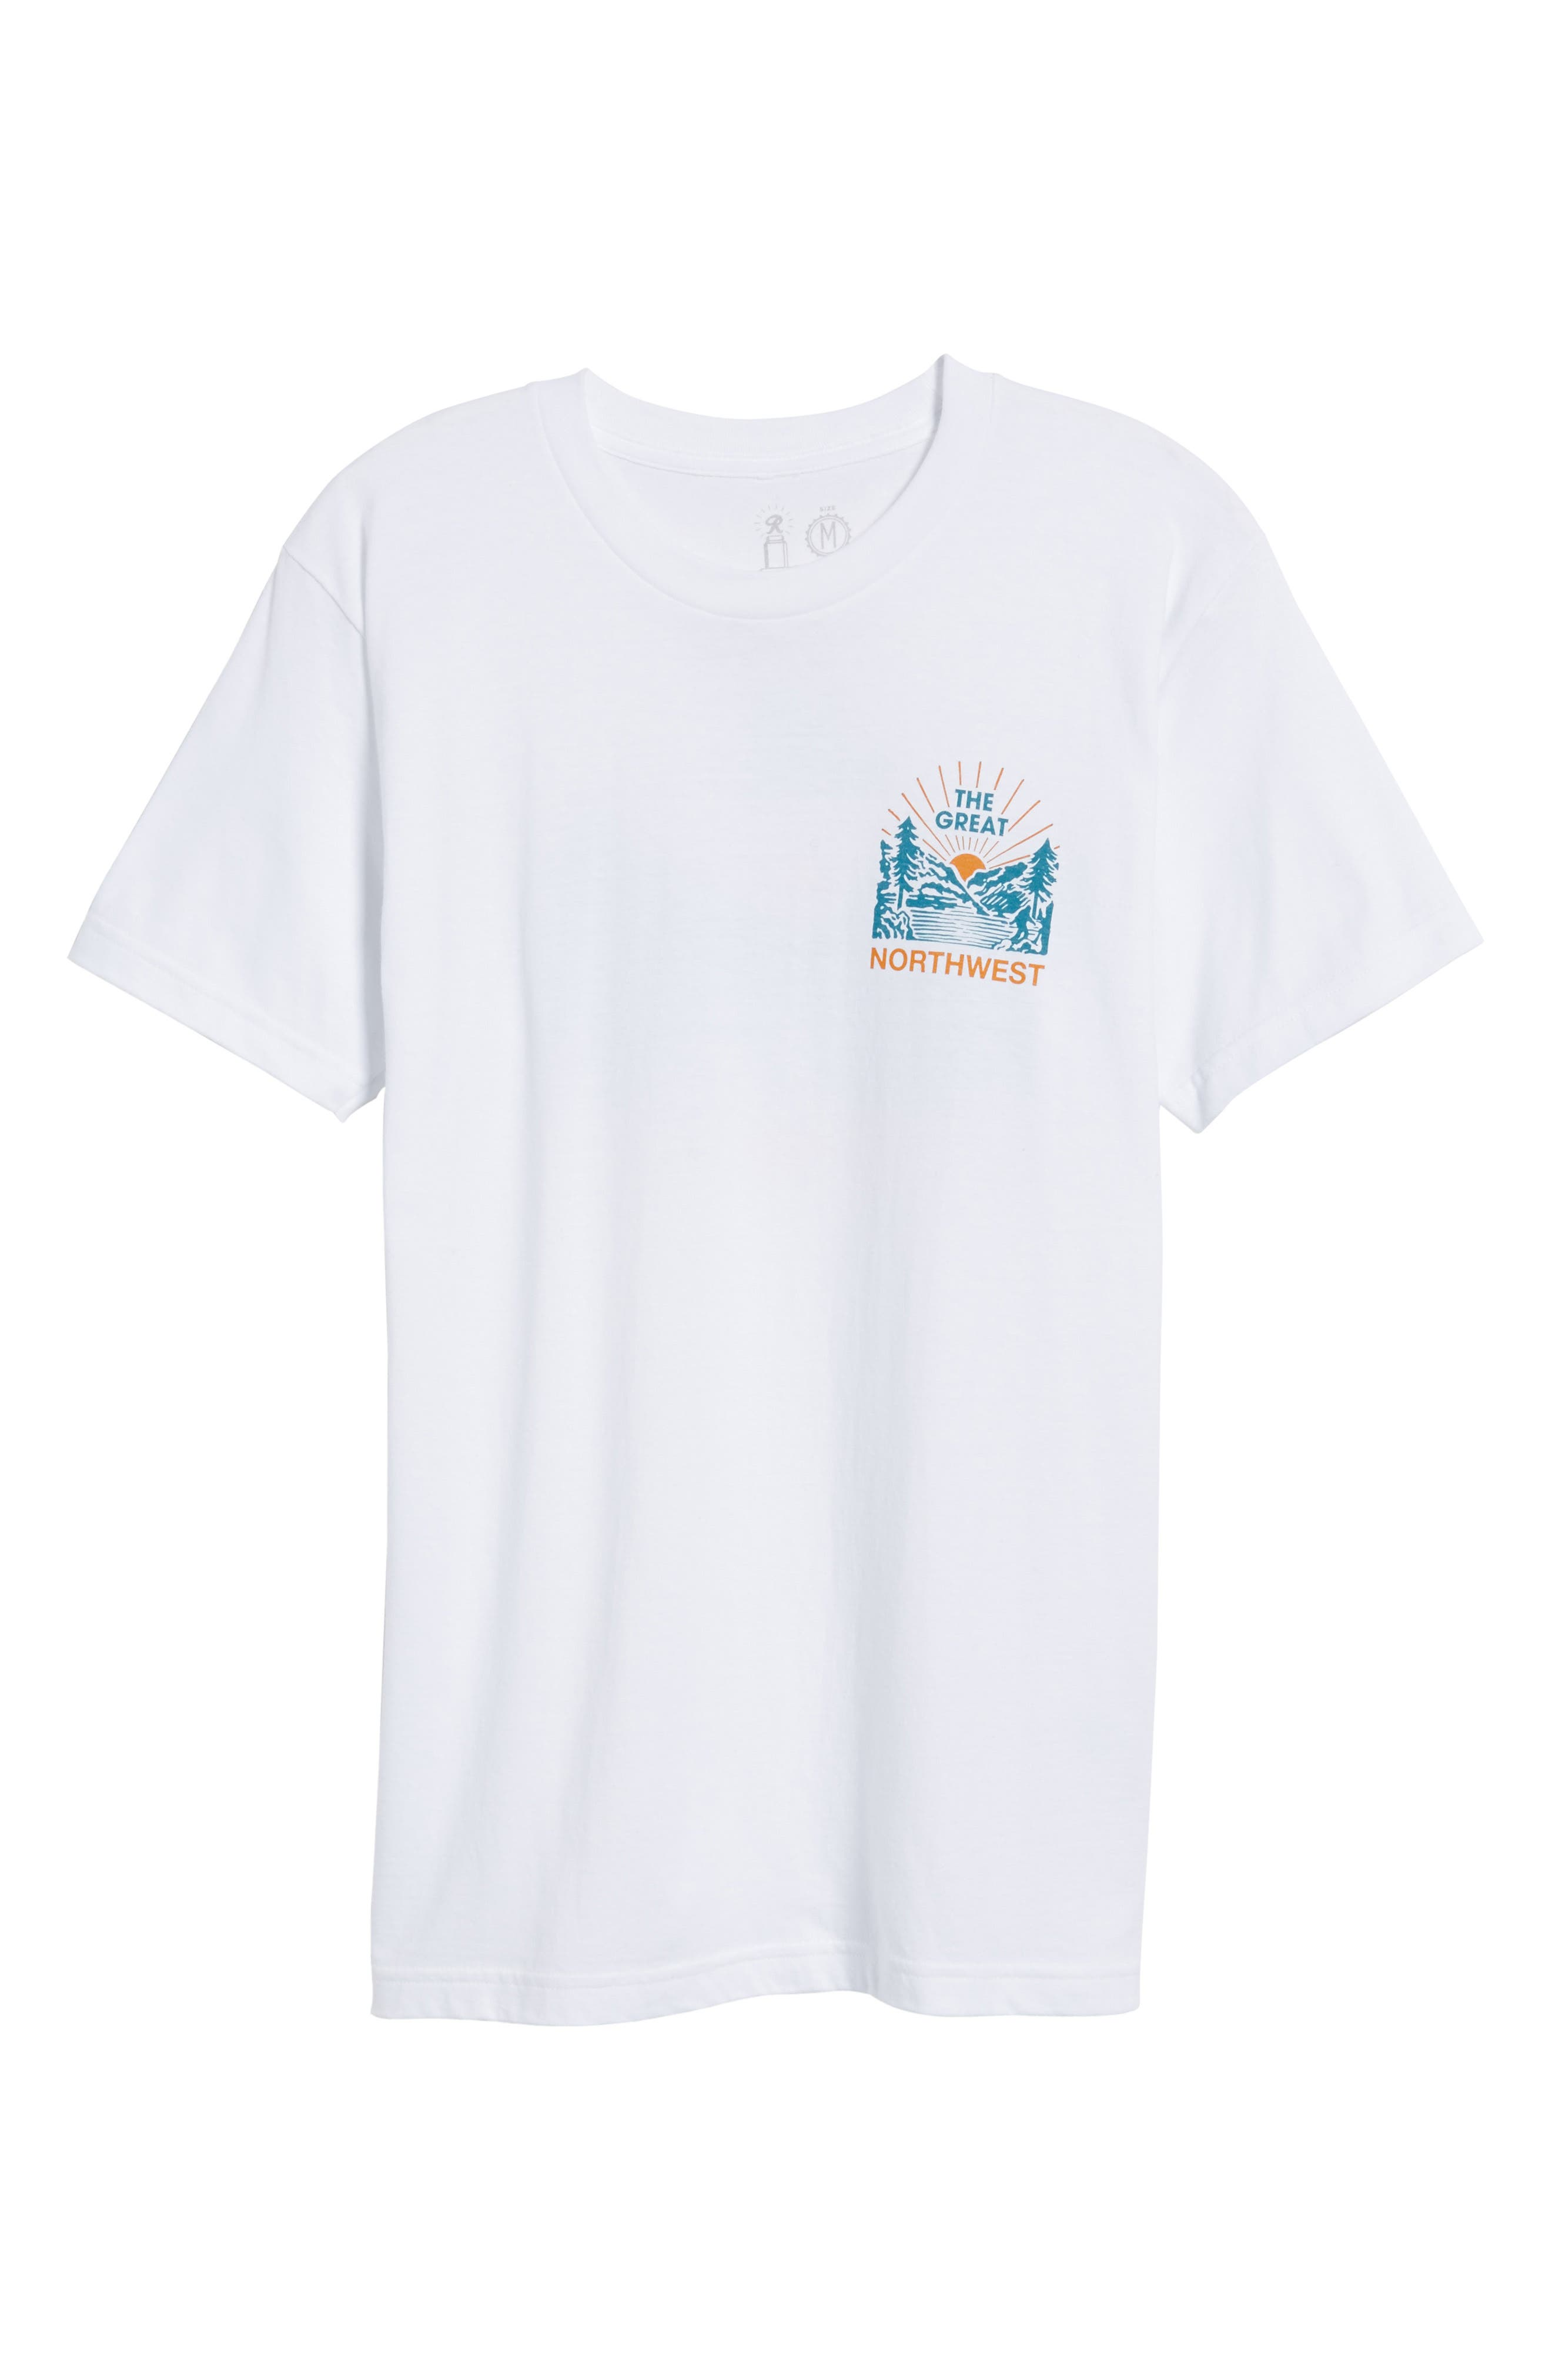 Squatch Valley 2 Graphic T-Shirt,                             Alternate thumbnail 6, color,                             100